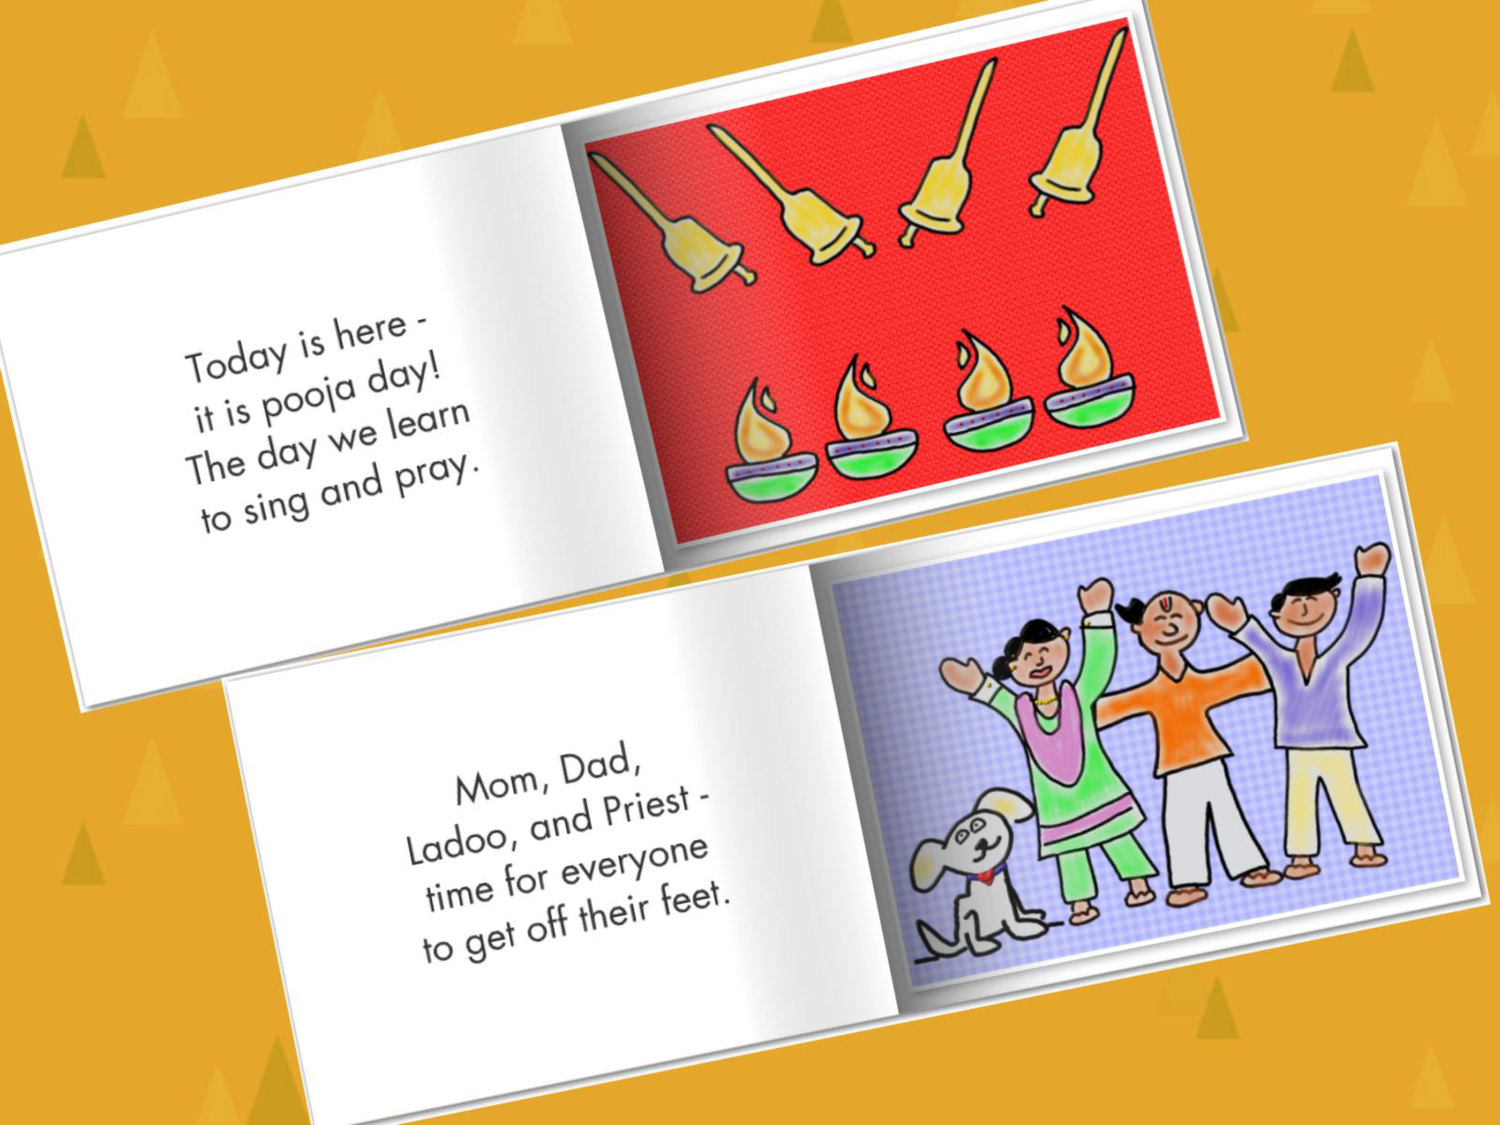 Ladoo & Pooja Day | Priya's Lit Blog: LadooBook -Multicultural Children's Book Review